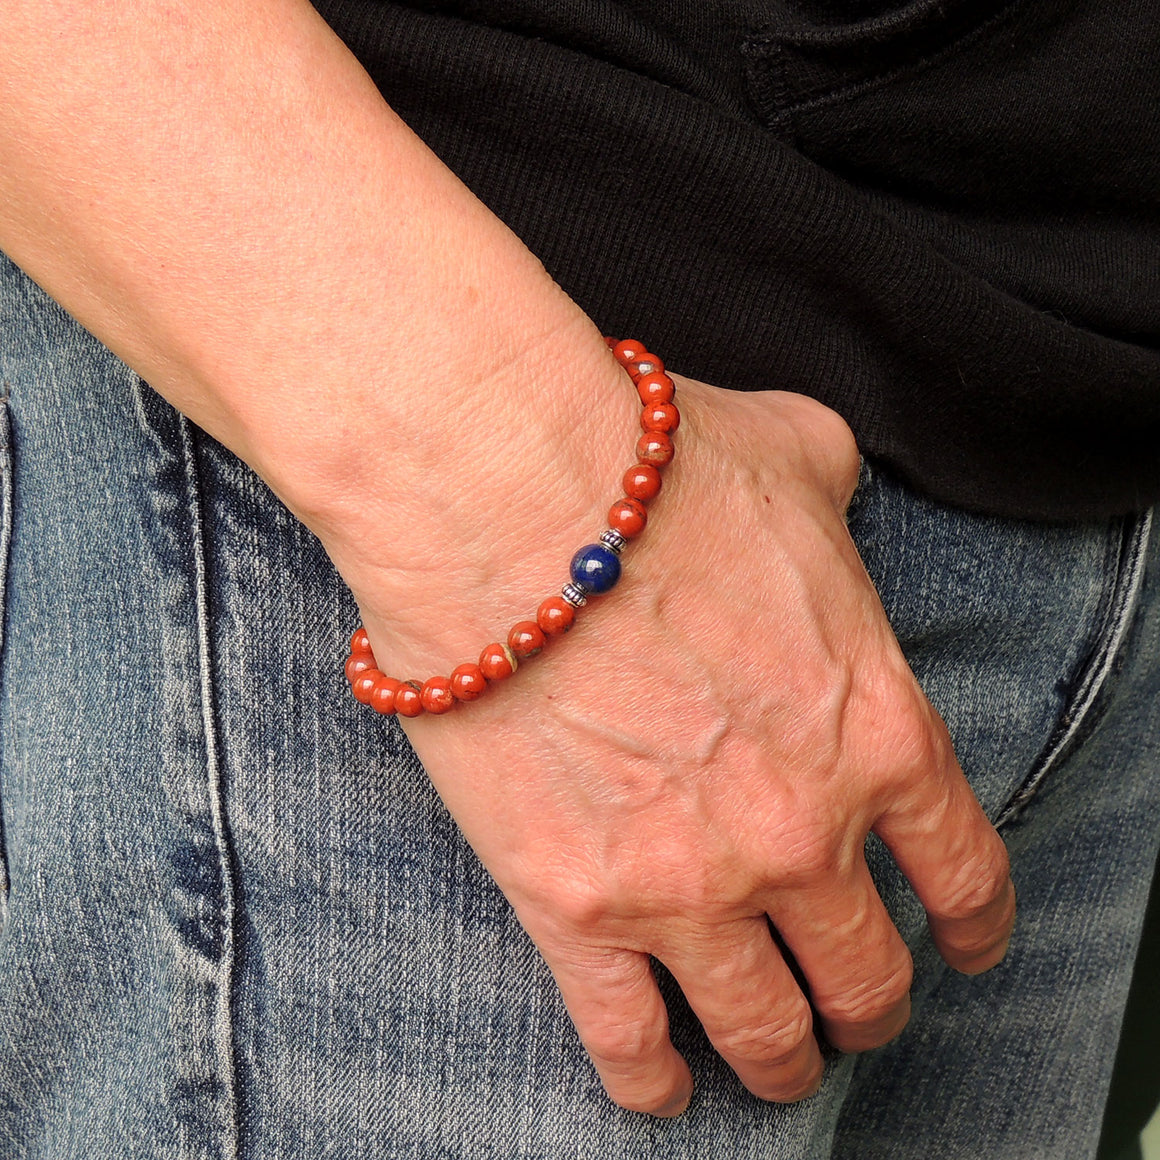 Handmade Adjustable Clasp Meditation Bracelet - Men's Women's Yoga Jewelry with Red Jasper, Lapis Lazuli Healing Gemstones, Genuine S925 Sterling Silver Parts (Non-Plated) BR1840